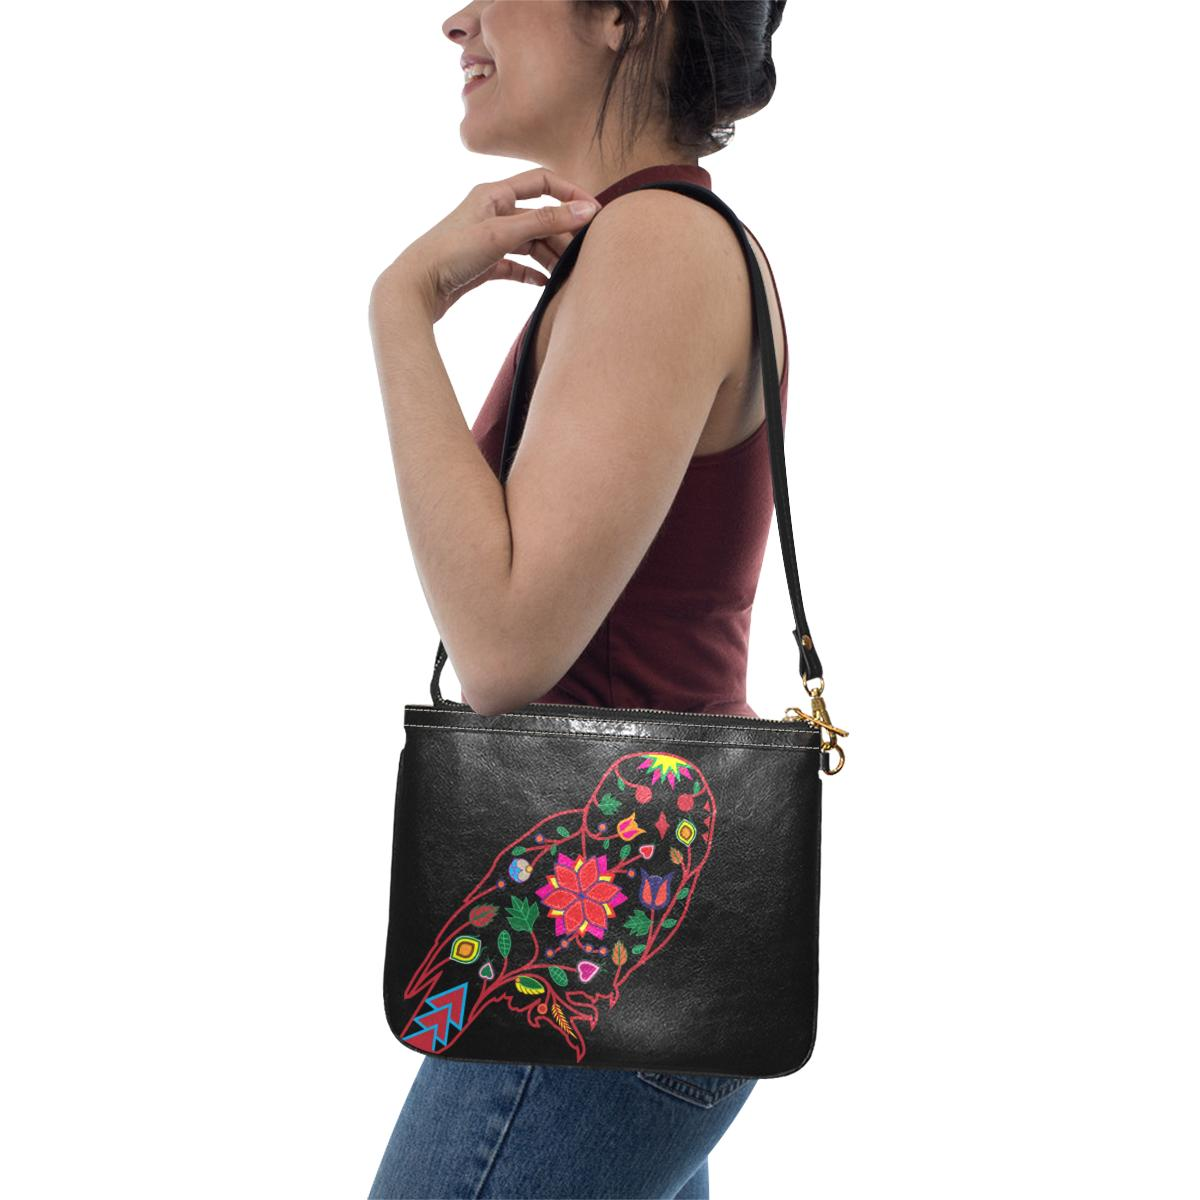 Floral Owl Small Shoulder Bag (Model 1710) Small Shoulder Bag (1710) e-joyer